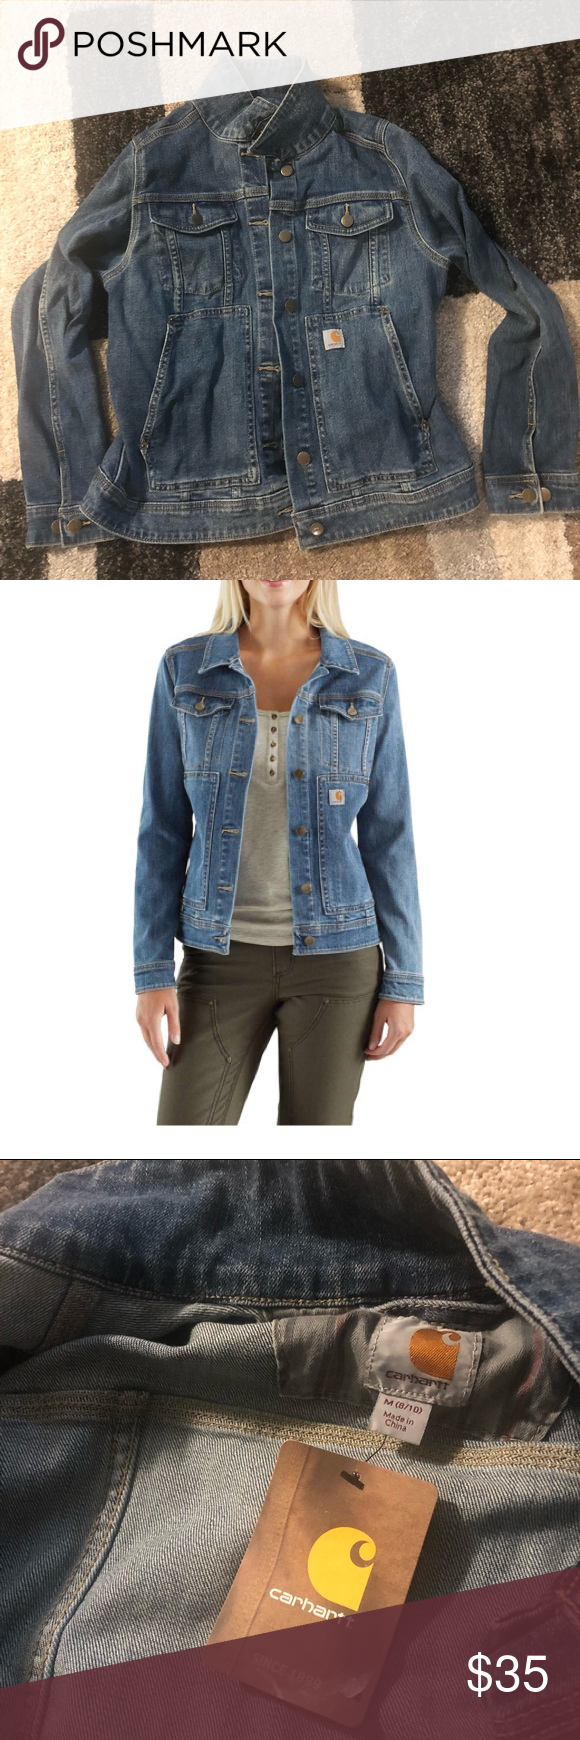 Carhartt Women's Medium Stonewash Denim Jacket Brand new Medium Retail $59.99 Carhartt Jackets & Coats Jean Jackets #carharttwomen Carhartt Women's Medium Stonewash Denim Jacket Brand new Medium Retail $59.99 Carhartt Jackets & Coats Jean Jackets #carharttwomen